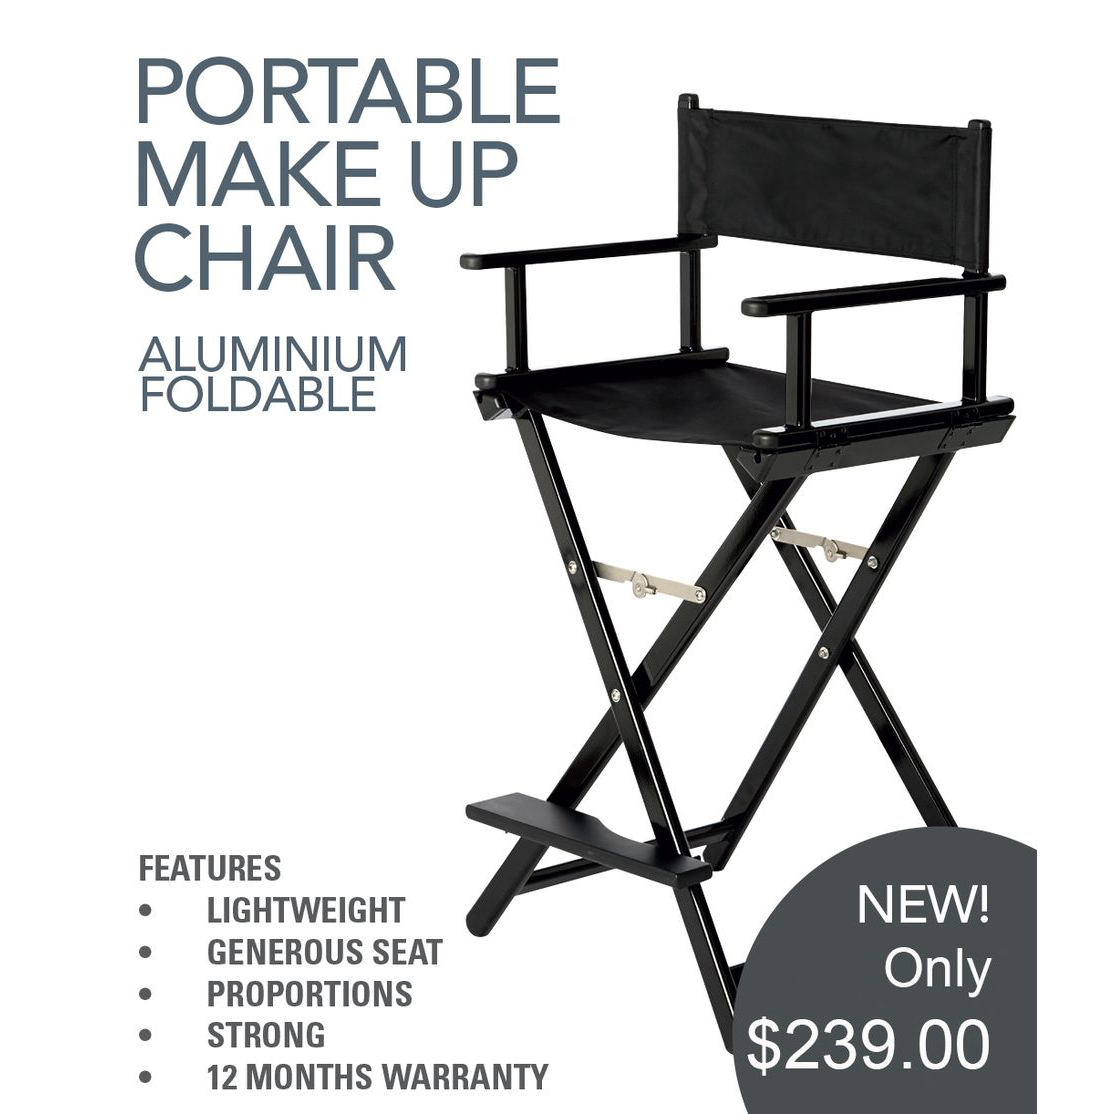 Portable makeup chair - Aqua Aluminium Foldable Makeup Chair Directors Chairprofessional Make Up Salon Supplies